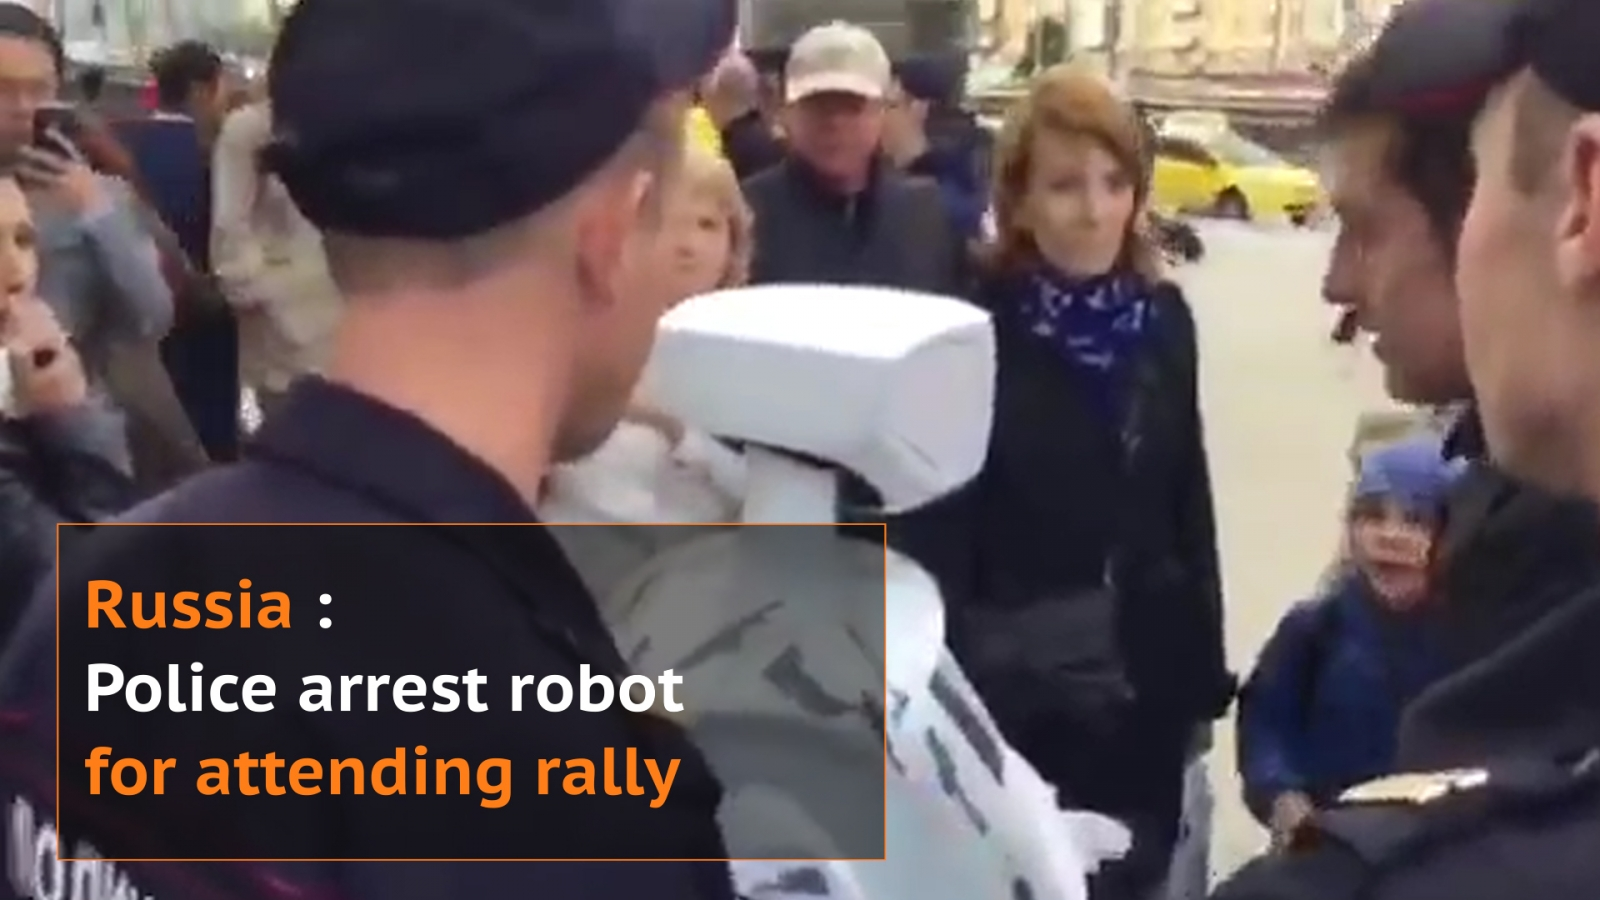 Russia: Police detain robot for attending political rally